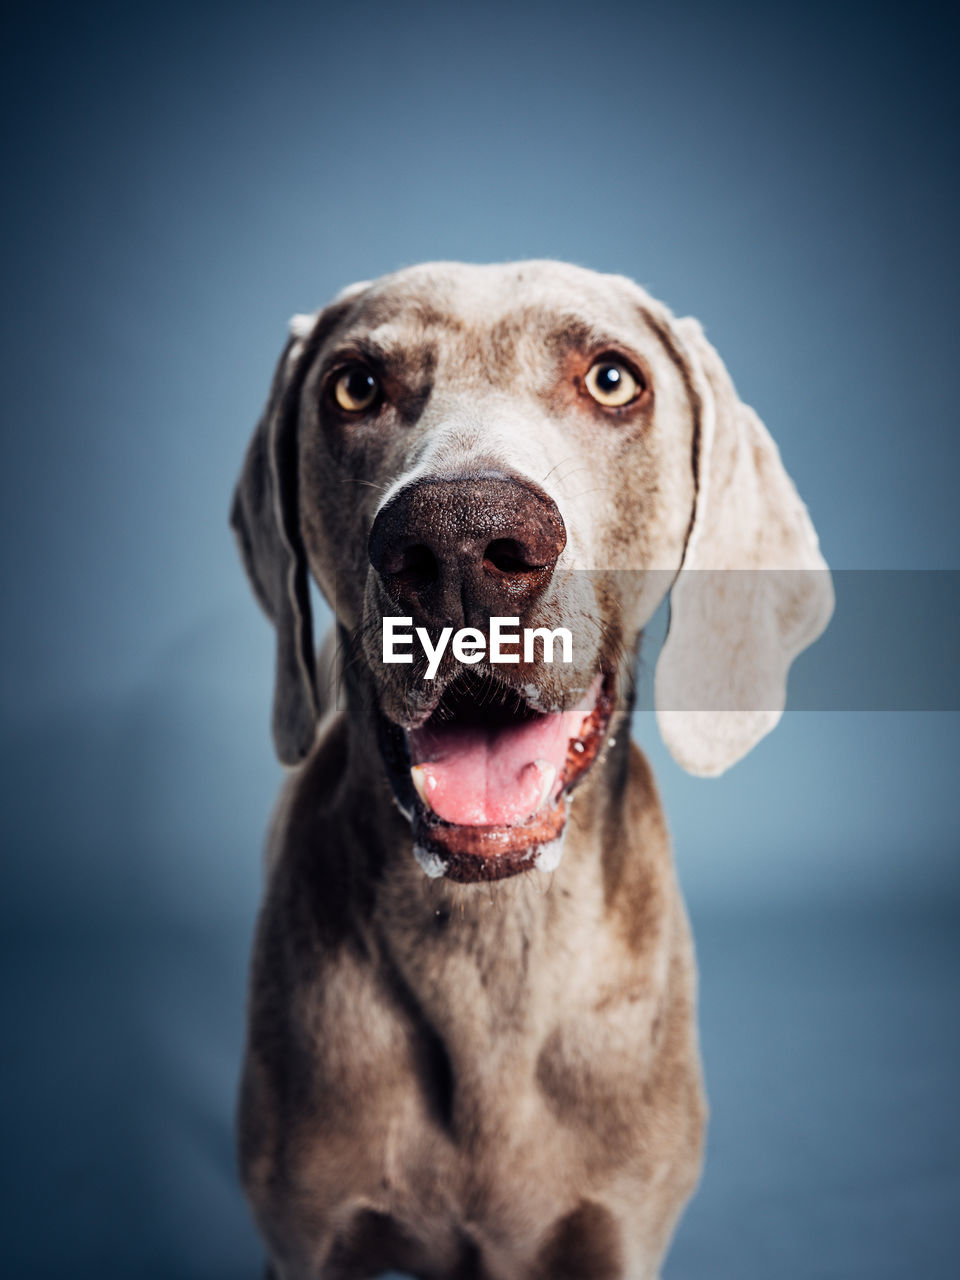 dog, canine, one animal, domestic, mammal, domestic animals, portrait, looking at camera, pets, vertebrate, close-up, focus on foreground, no people, weimaraner, front view, studio shot, indoors, mouth open, blue background, purebred dog, animal mouth, animal eye